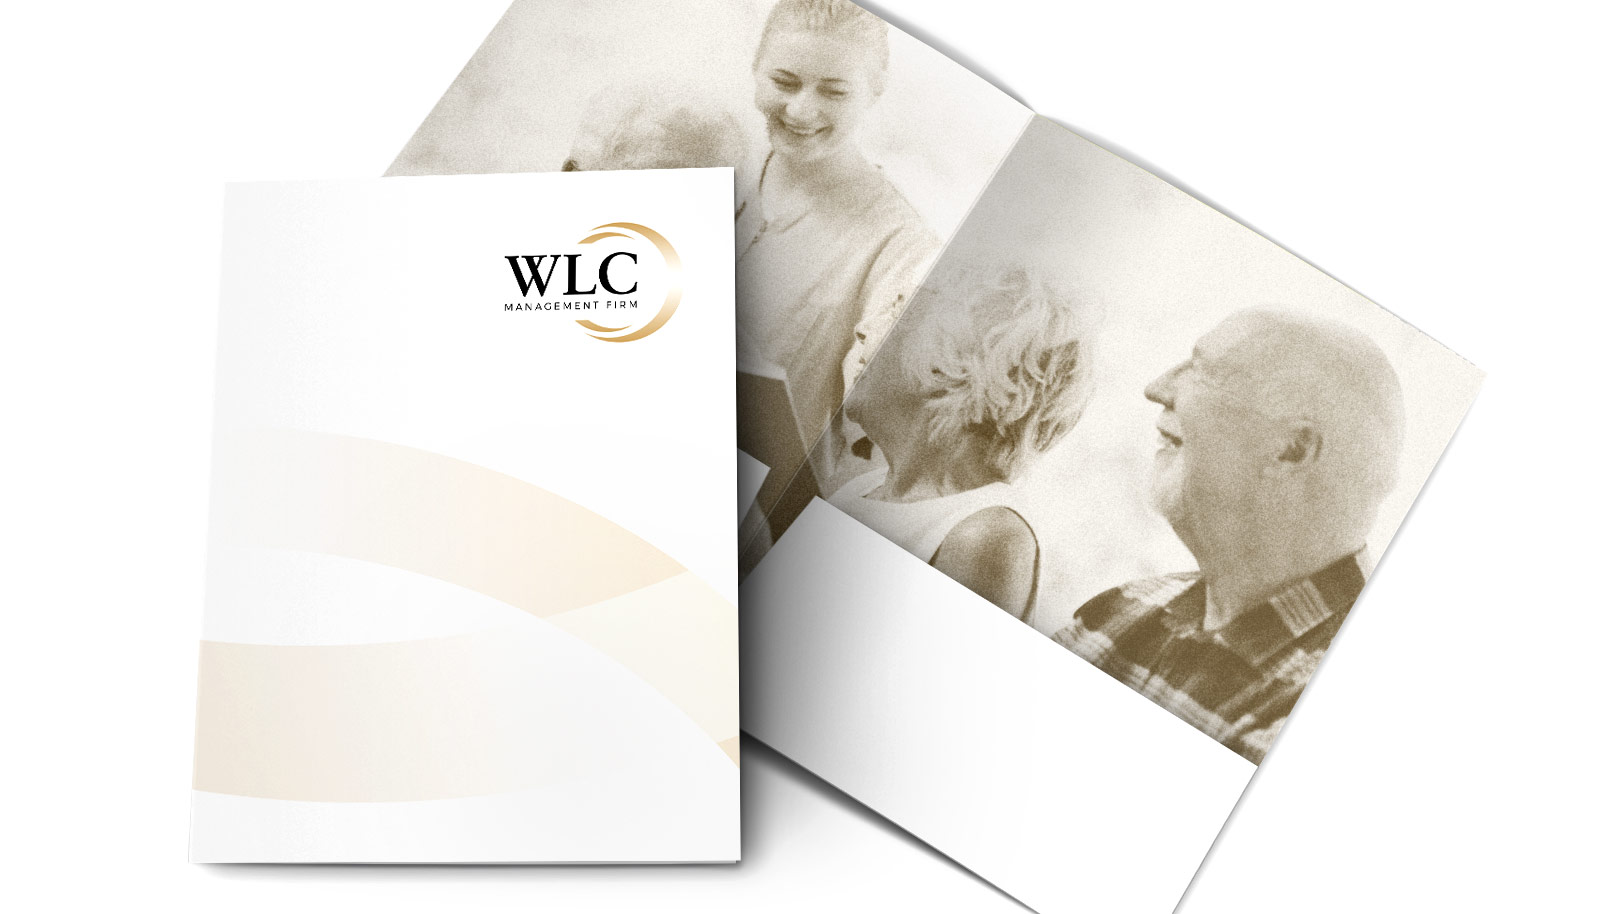 WLC Management Firm Promotional Folder Design